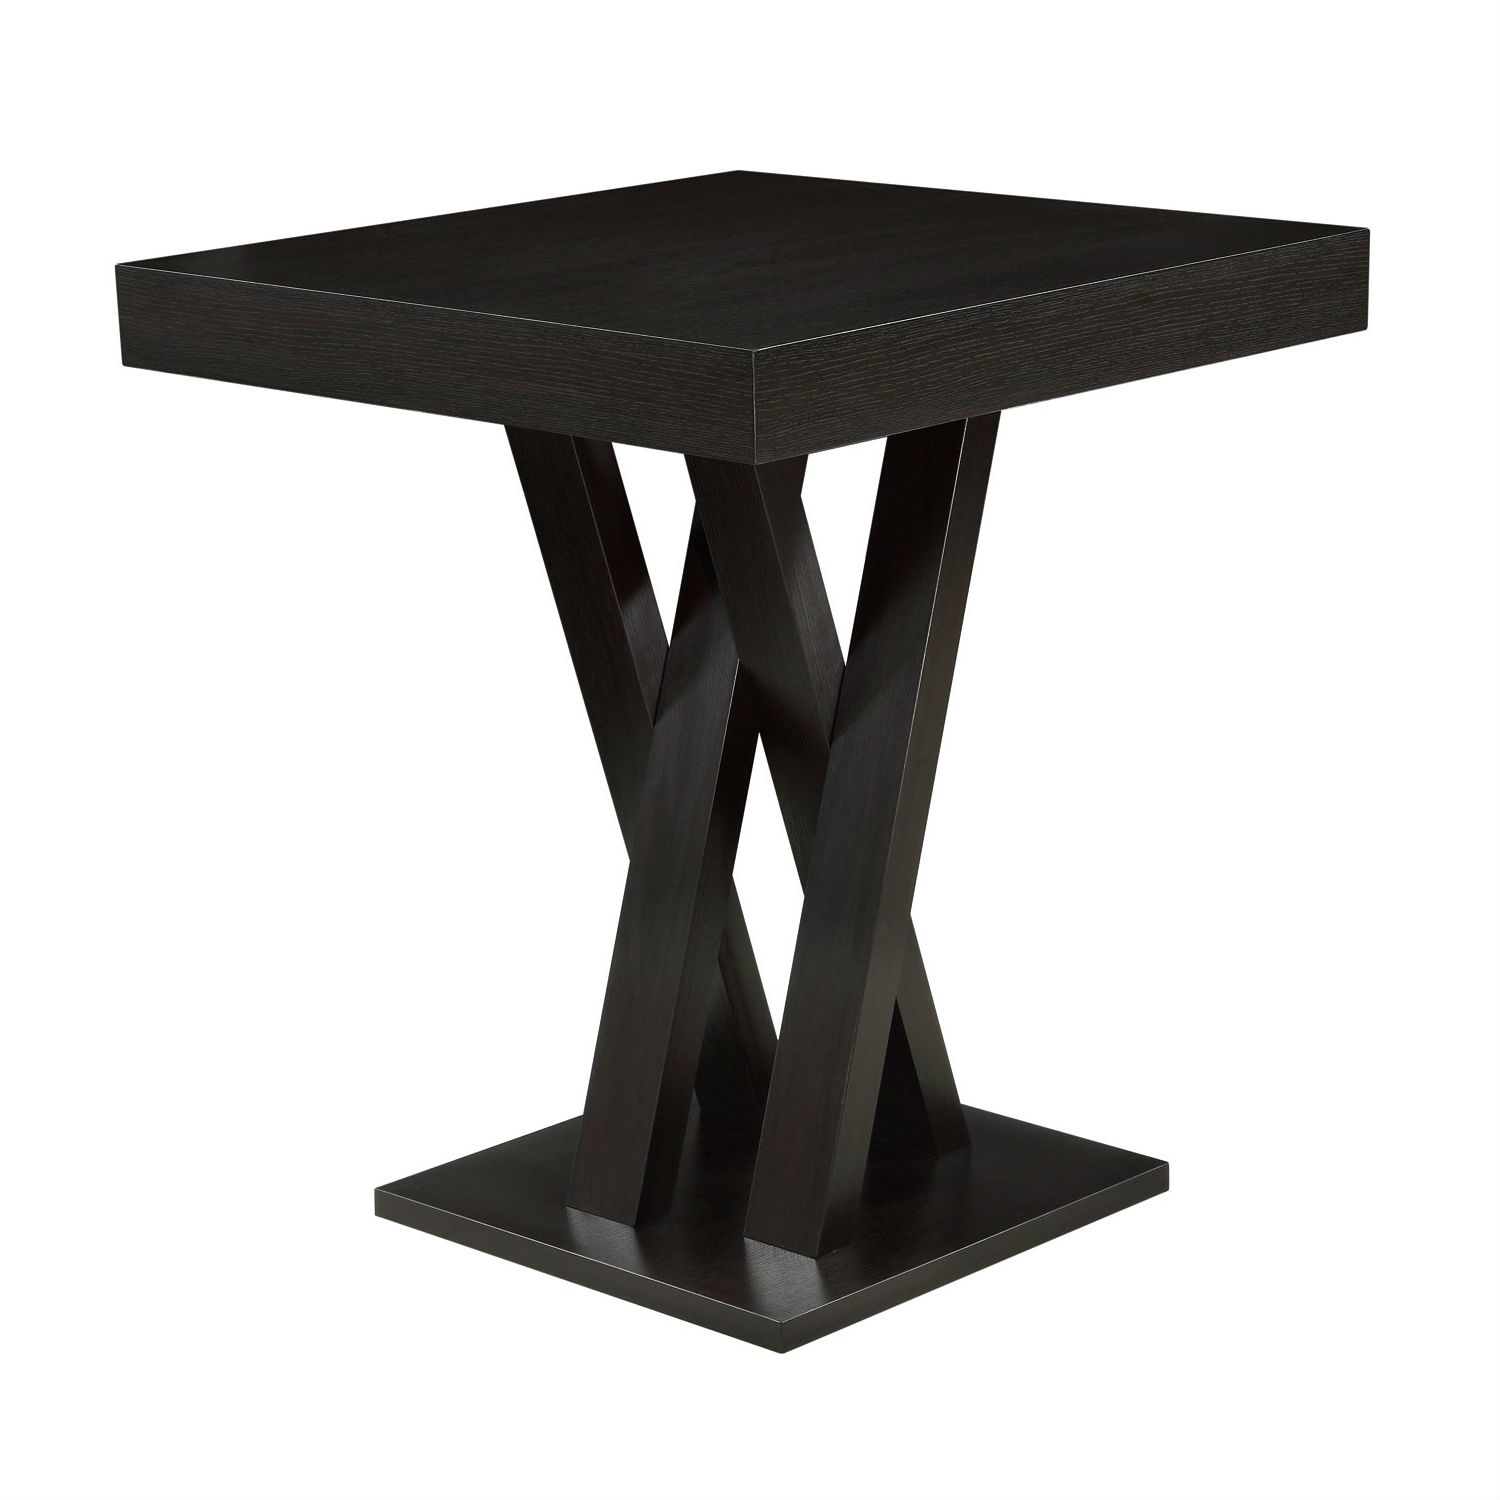 Modern 40 inch high square dining table in dark cappuccino finish retail price 33900 watchthetrailerfo